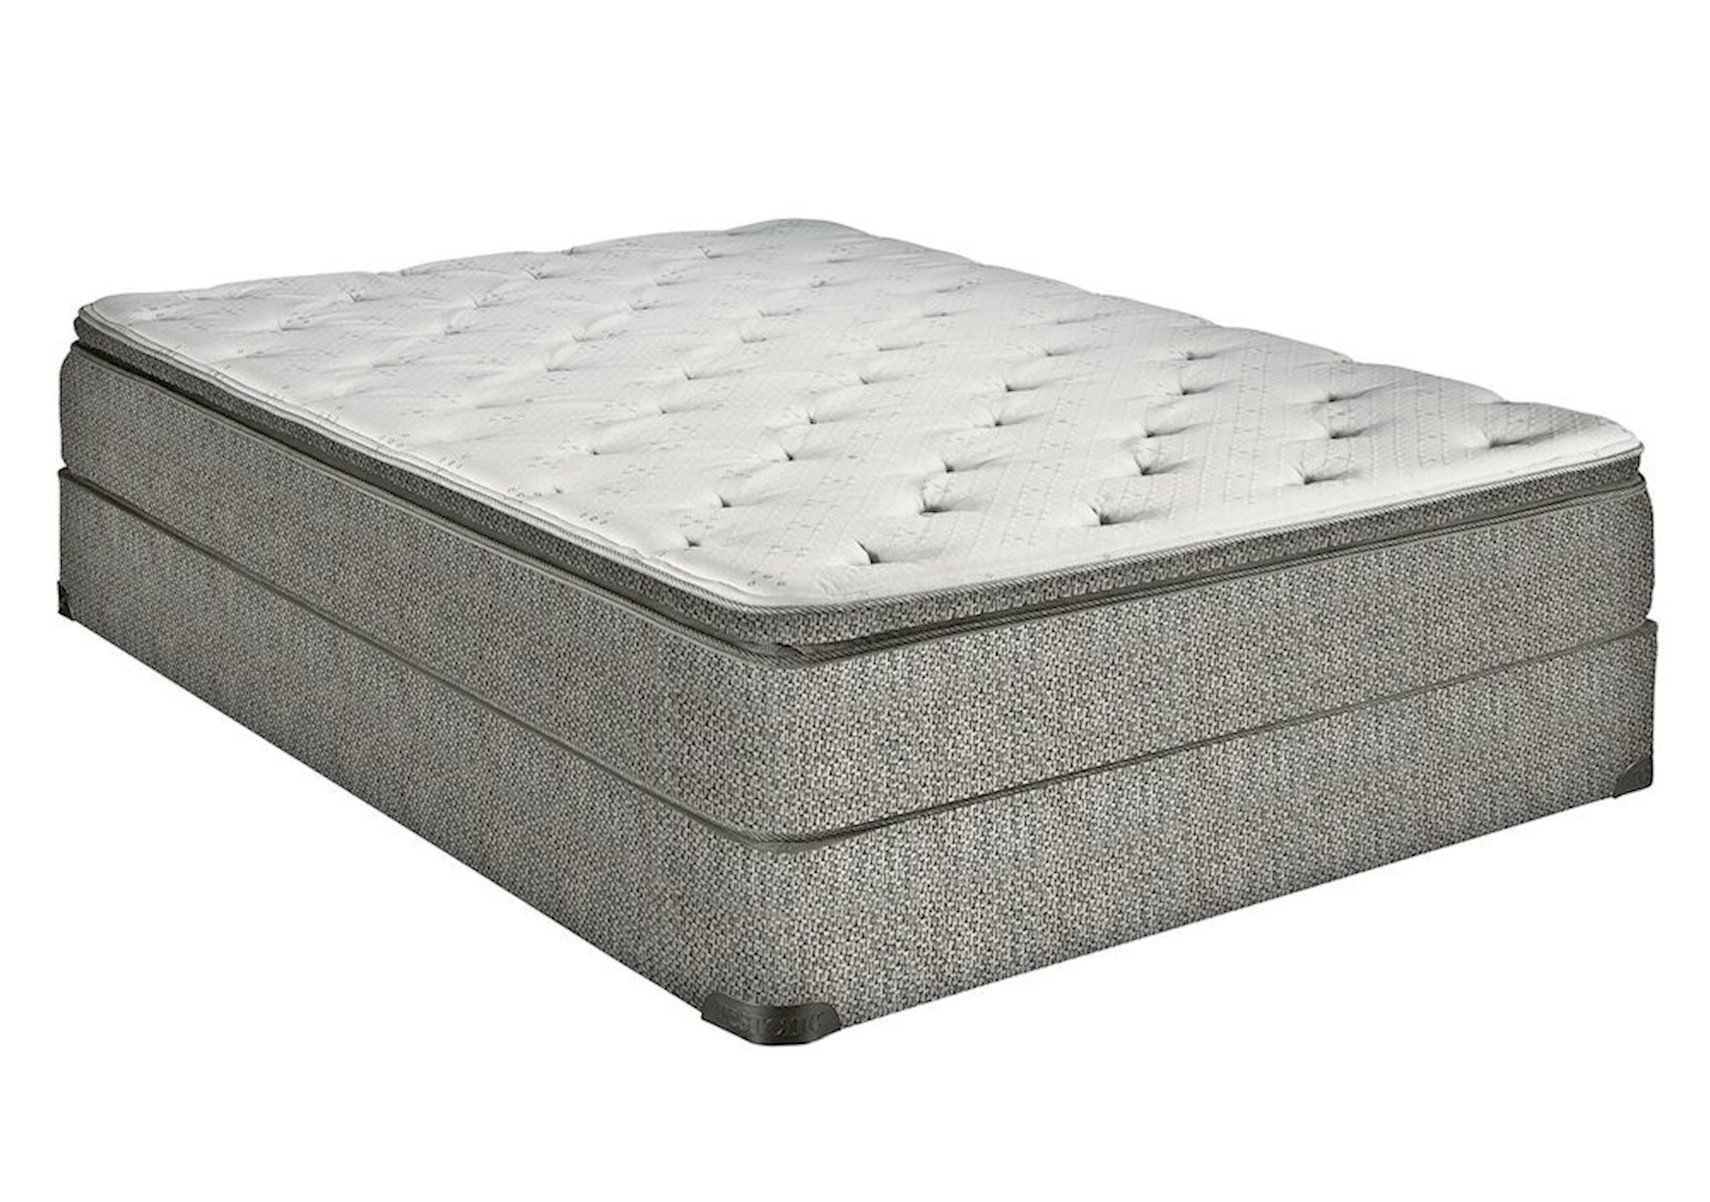 mattress qlt serta wid teddington perfect p queen sleeper plush prod pad hei